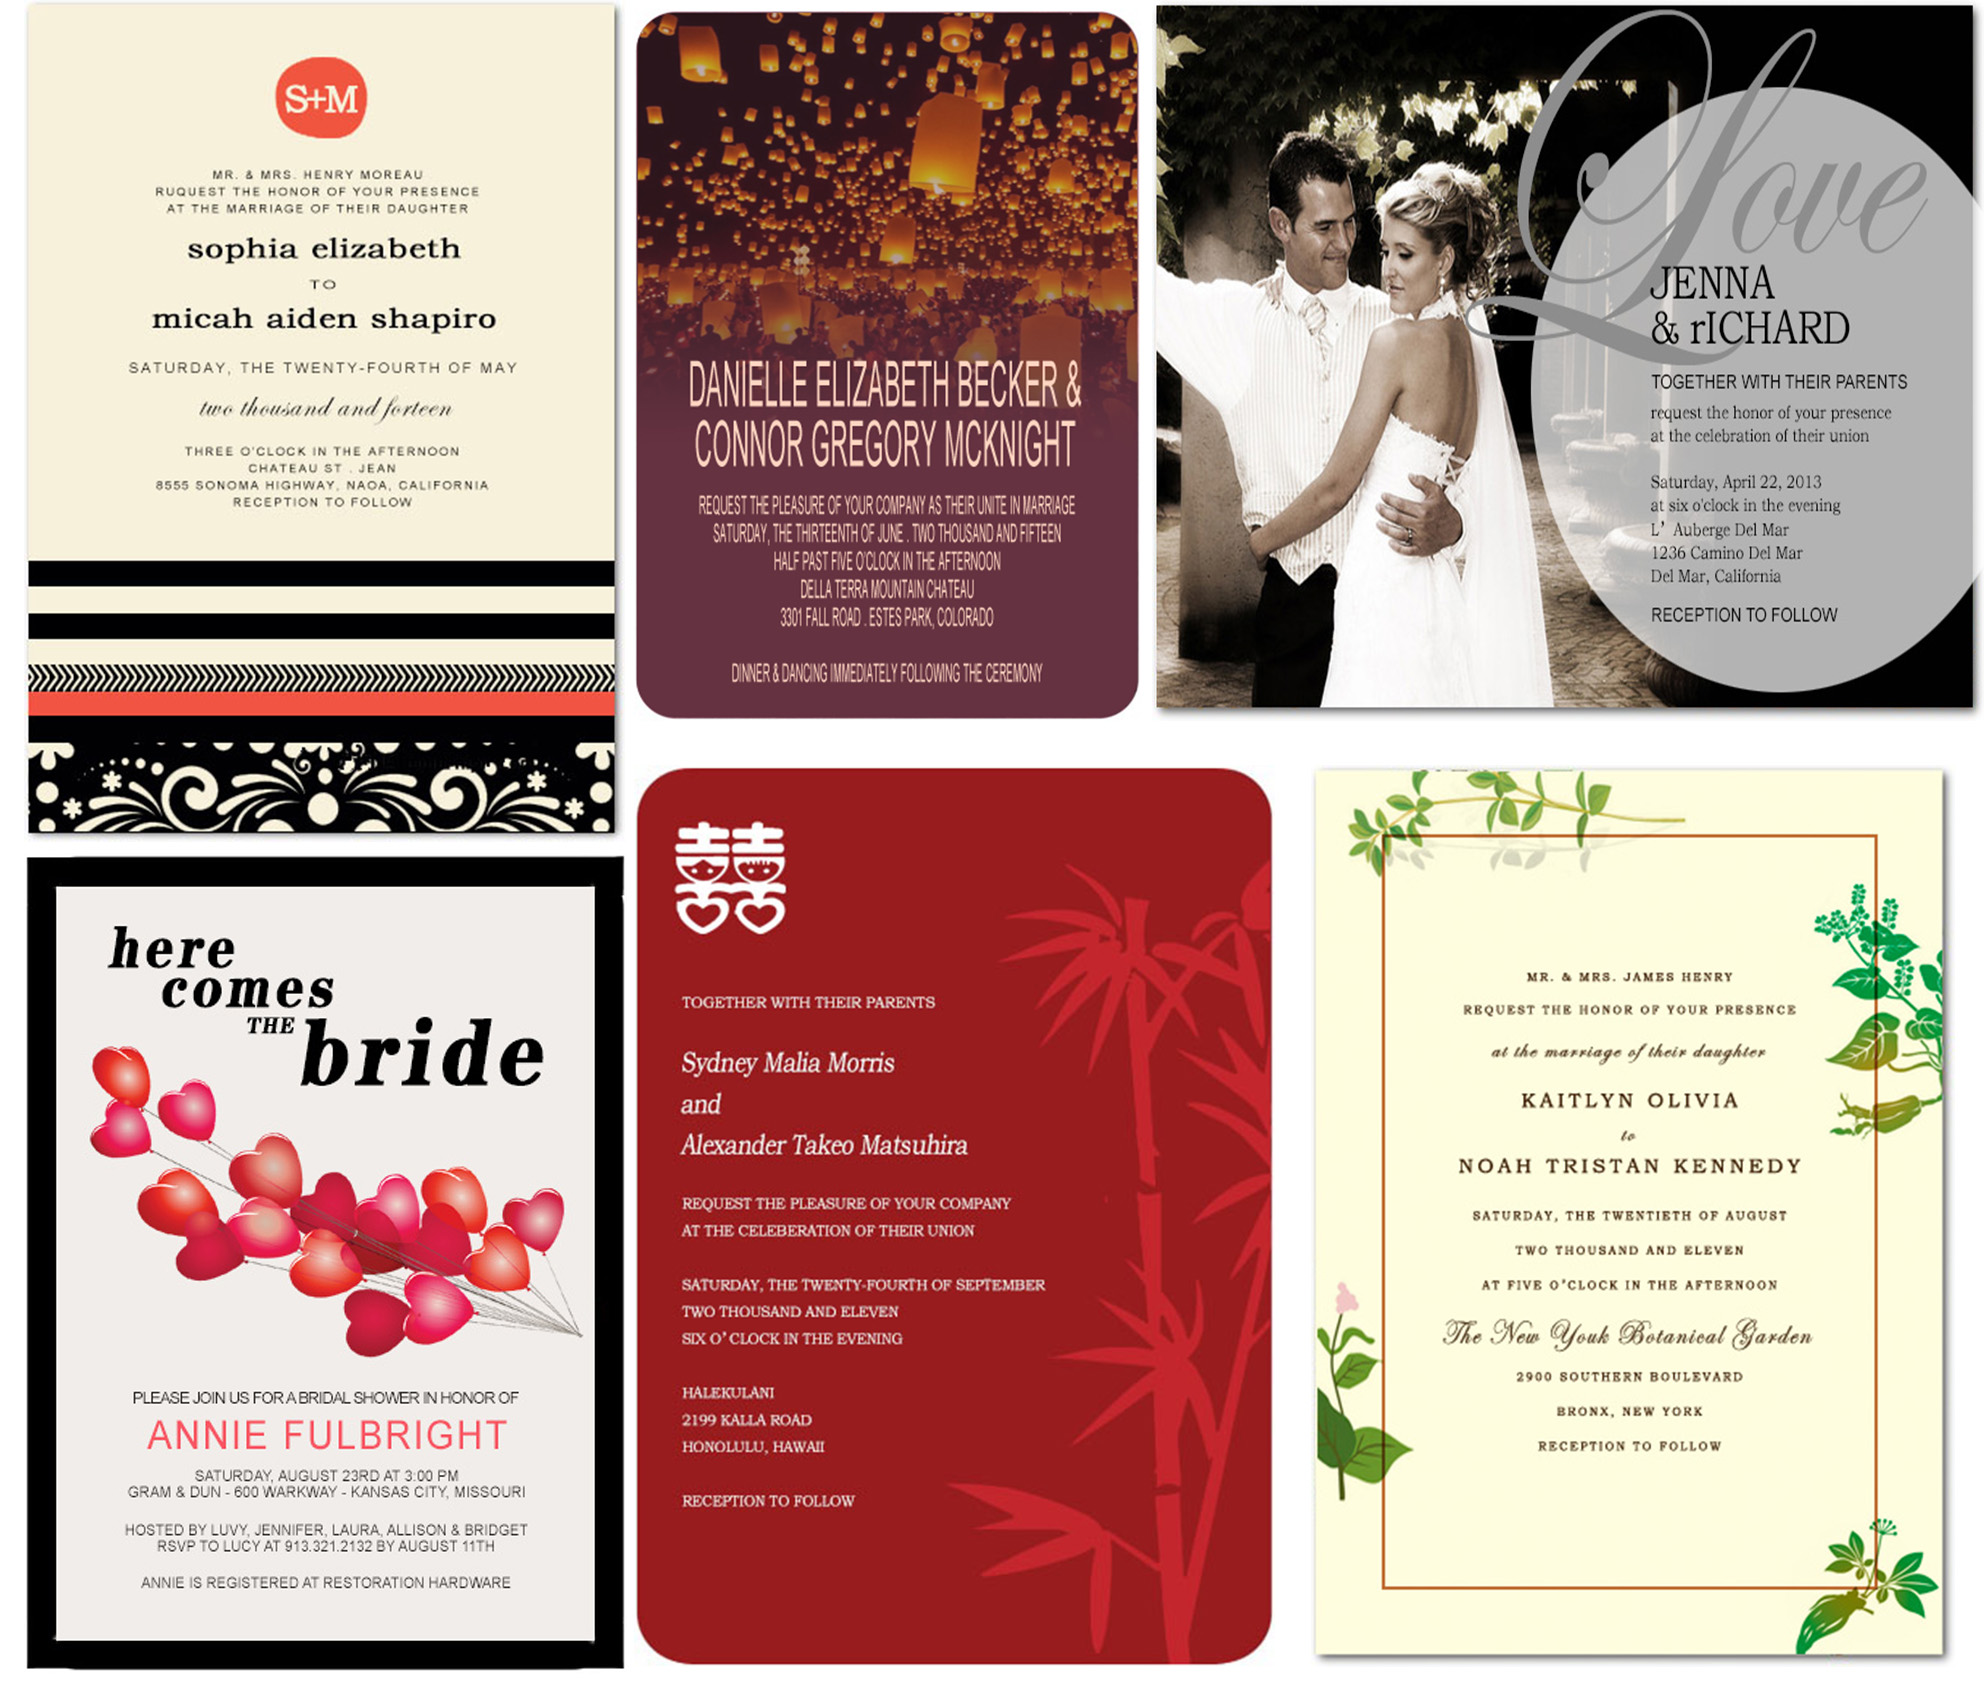 wedding invitations Archives - Page 2 of 3 - Happyinvitation.com ...